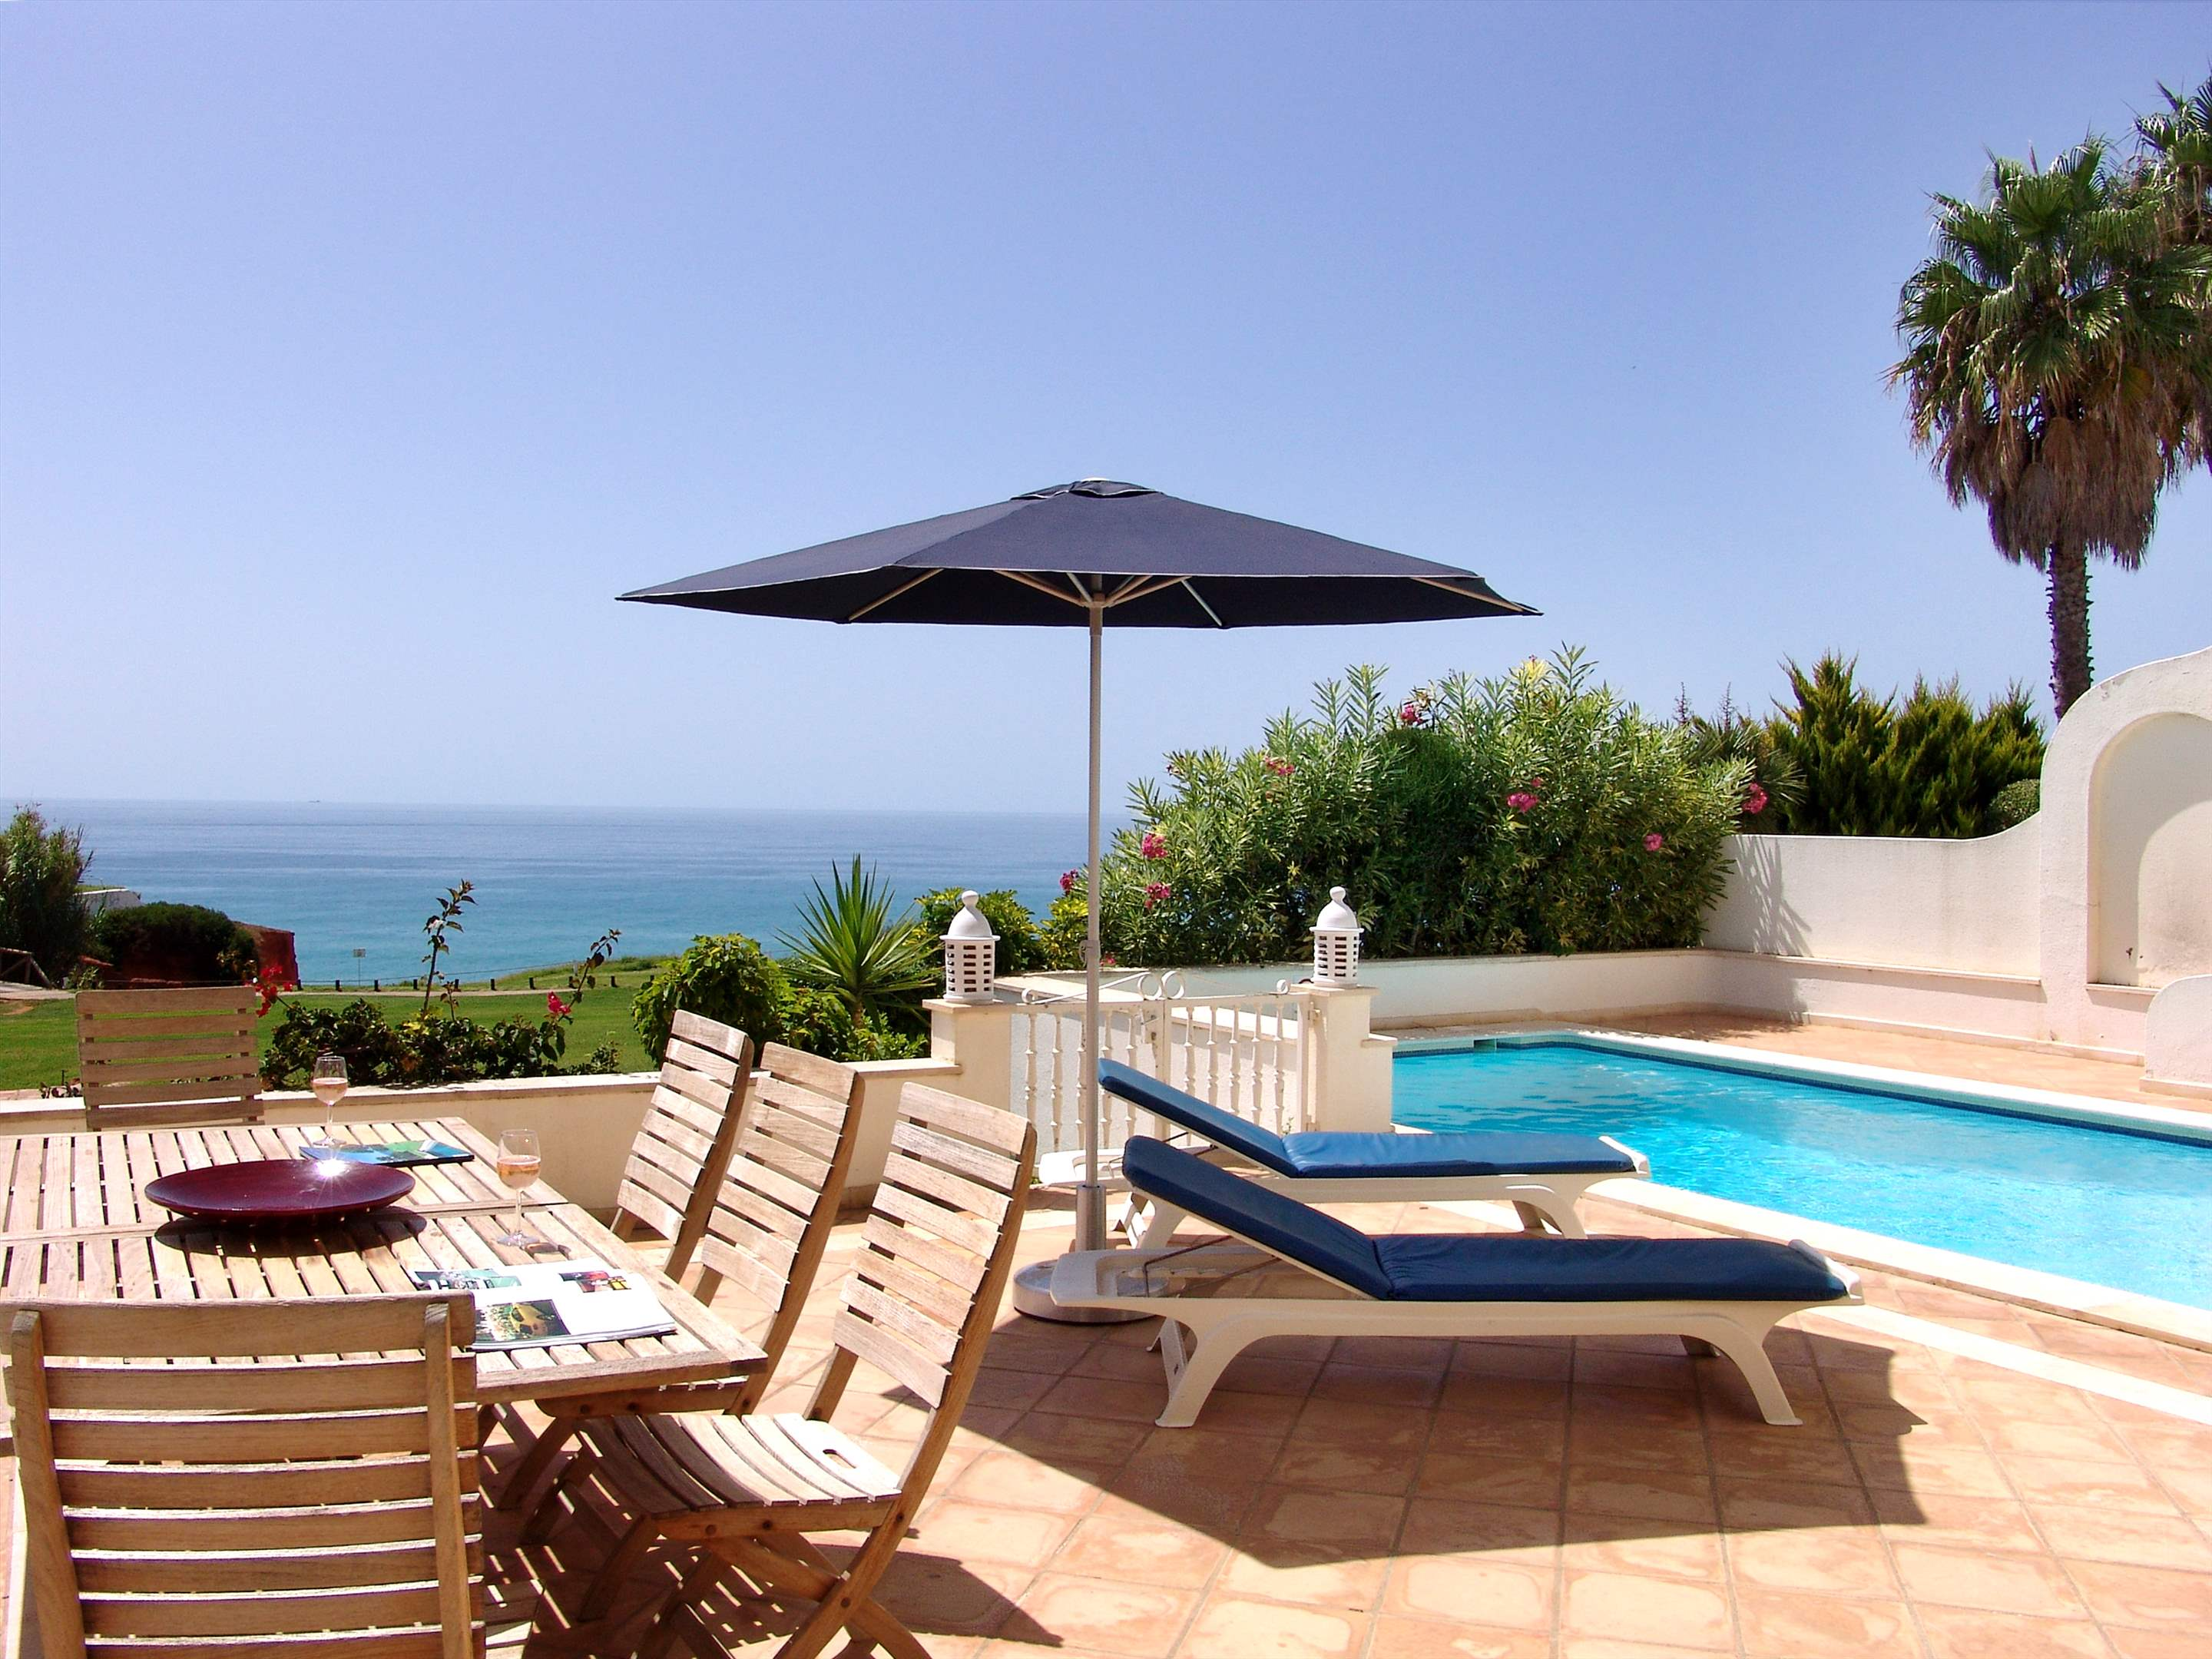 Villas Louisa, 3 bedroom, 3 bedroom villa in Vale do Lobo, Algarve Photo #2